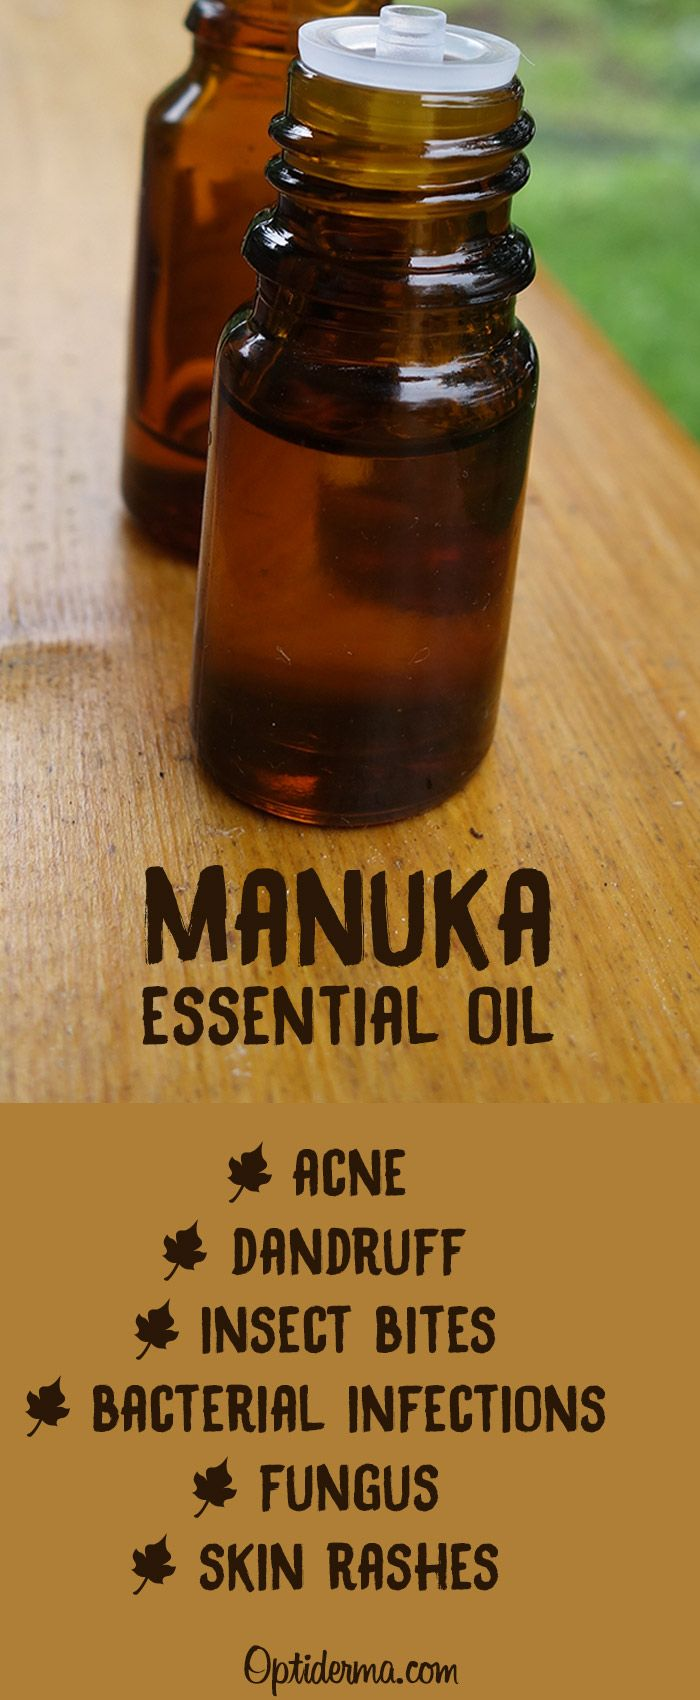 Manuka Essential Oil is renown for its antibacterial, anti-fungal and anti-inflammatory properties. It relieves skin irritation and infections. You can use it for dandruff, insect bites, skin rashes, fungus and skin conditions such as acne, eczema or psoriasis. Here I explain how you can use it for best results: https://www.optiderma.com/articles/manuka-oil/